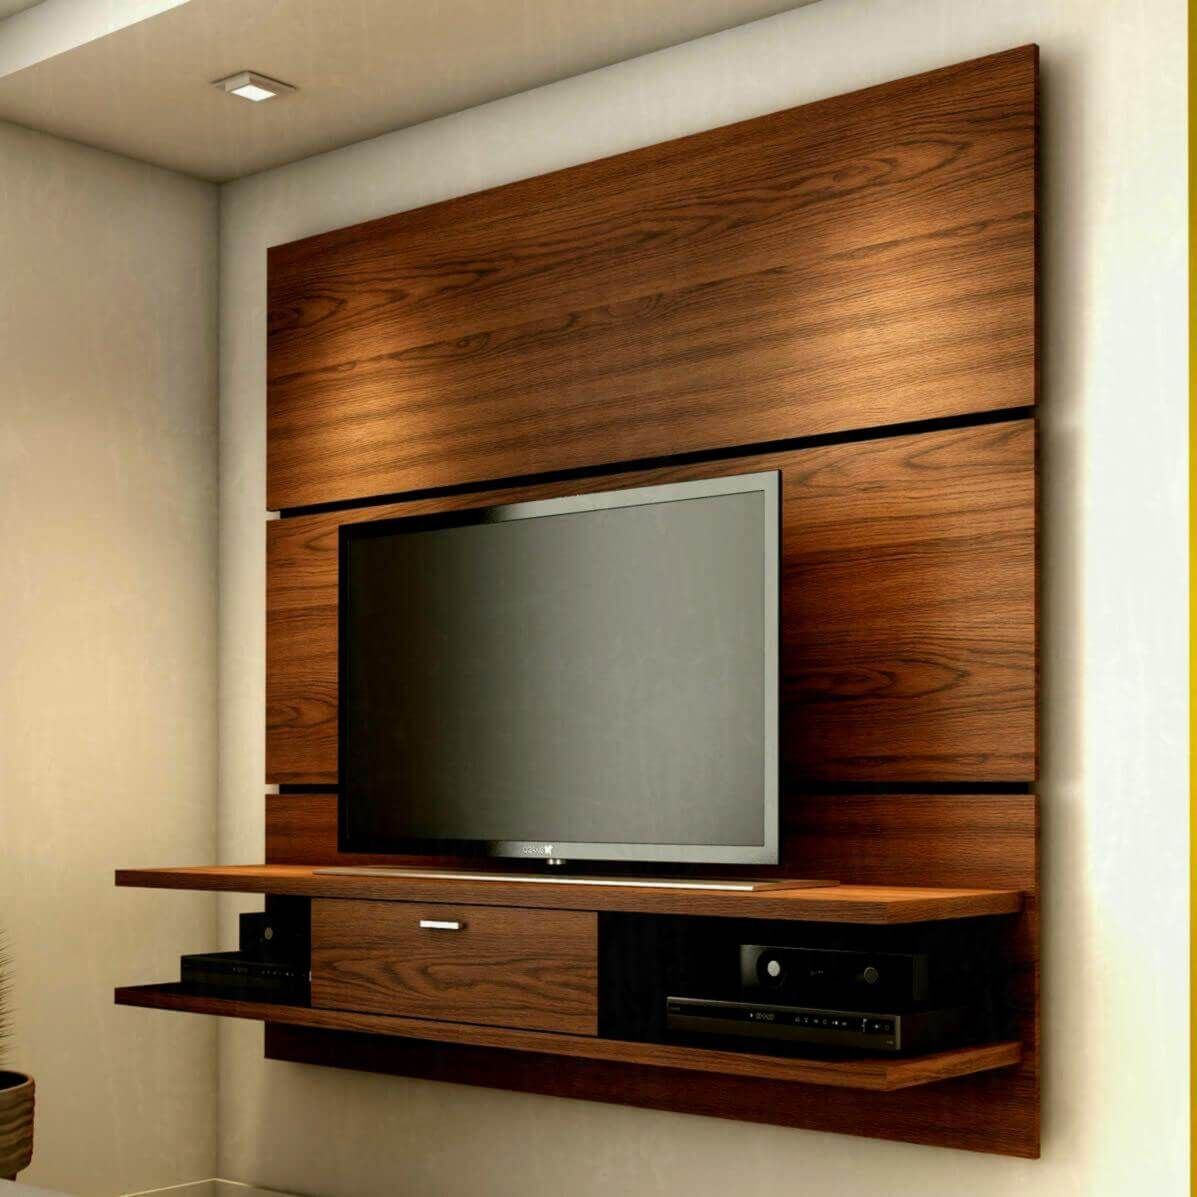 35 Modern Led Tv Wall Panel Designs For Your Living Room Wall Mount Tv Stand Tv In Bedroom Tv Stand Designs